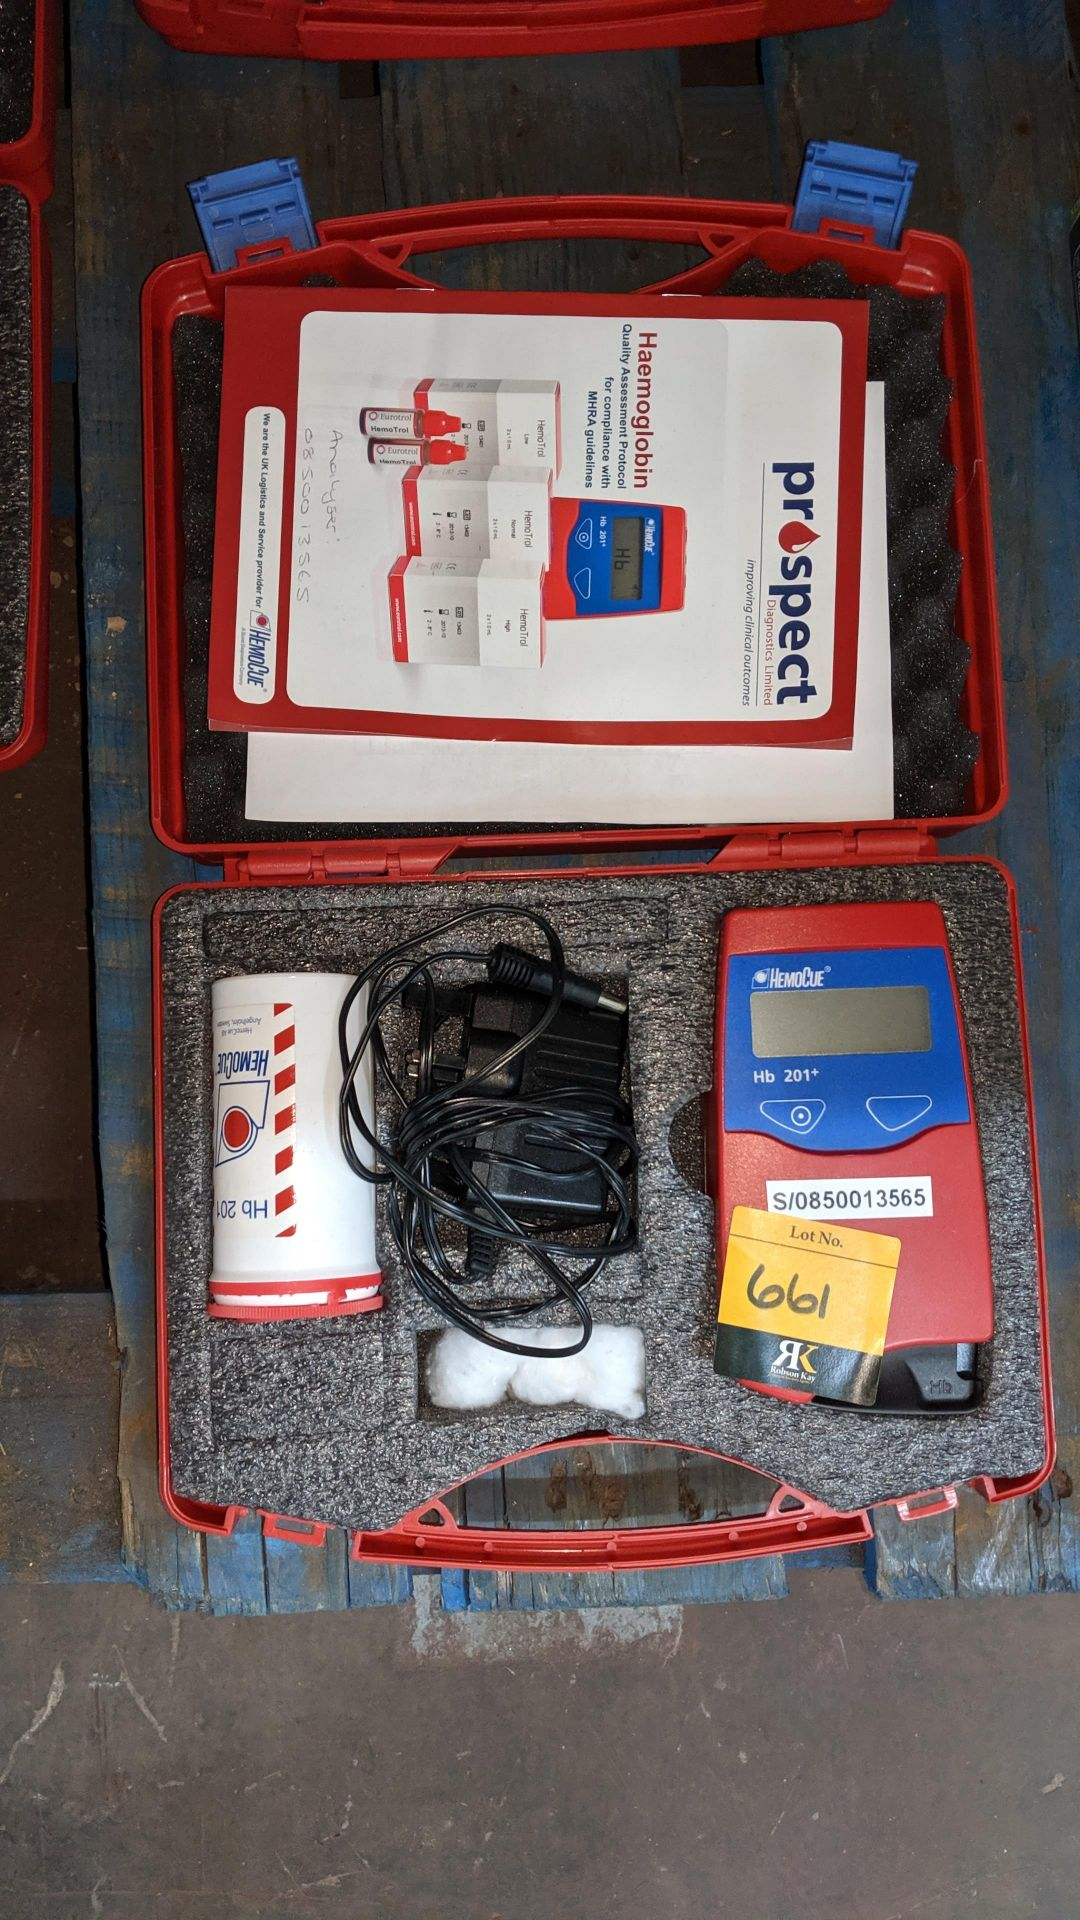 Lot 661 - HemoCue HB201+ haemogloblin testing device in case. This is one of a large number of lots used/owned